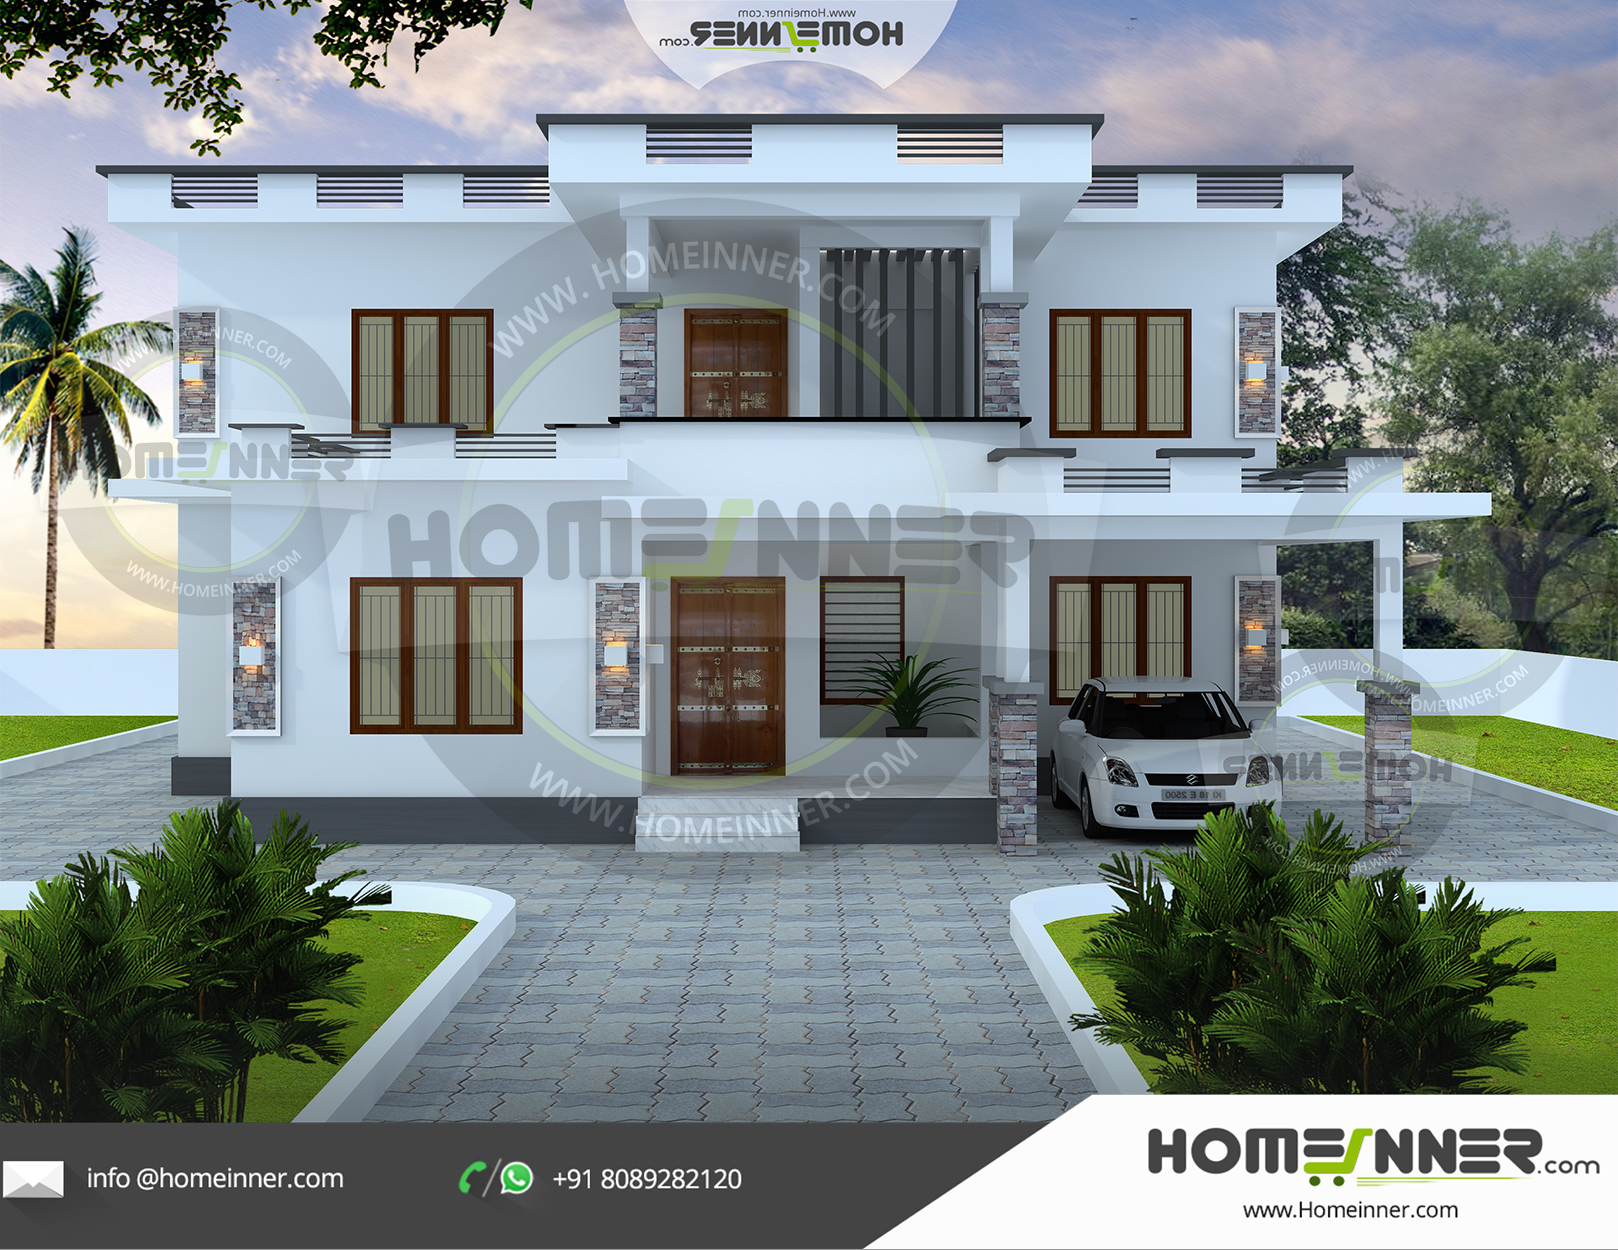 Nashik 25 Lakh 4 BHK 2122 sq ft Villa house plans